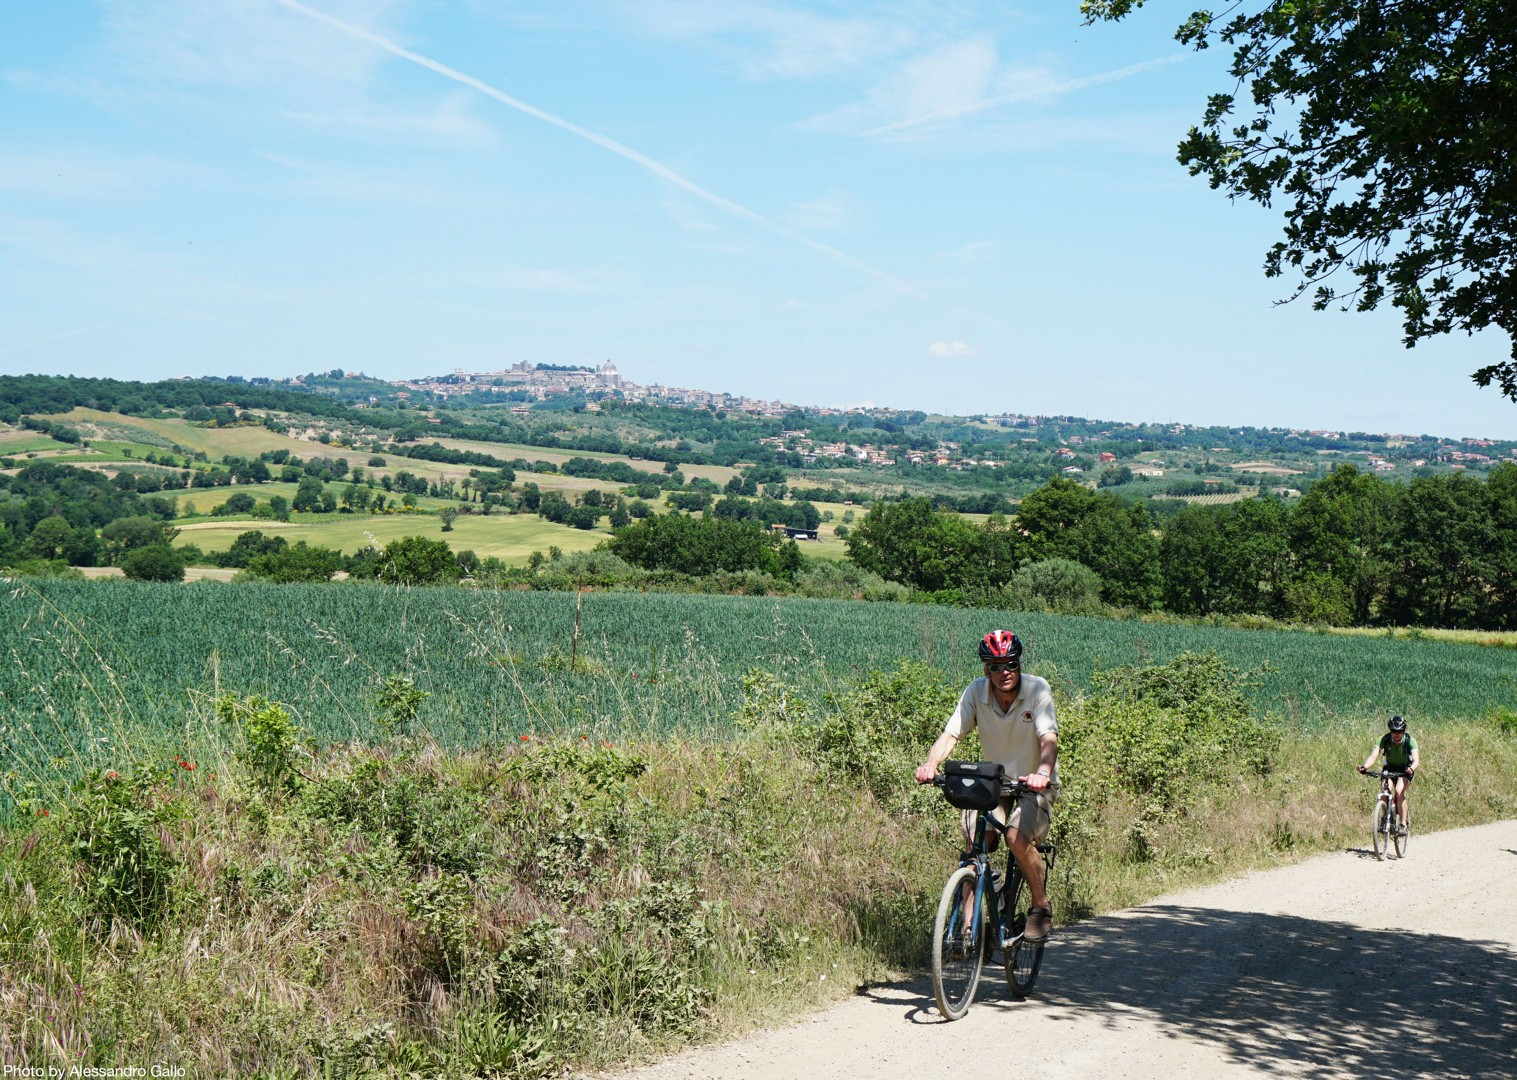 umbria-leisure-cycling-holiday-in-umbria-italy.JPG - Italy - Green Valley of Umbria - Self-Guided Leisure Cycling Holiday - Leisure Cycling